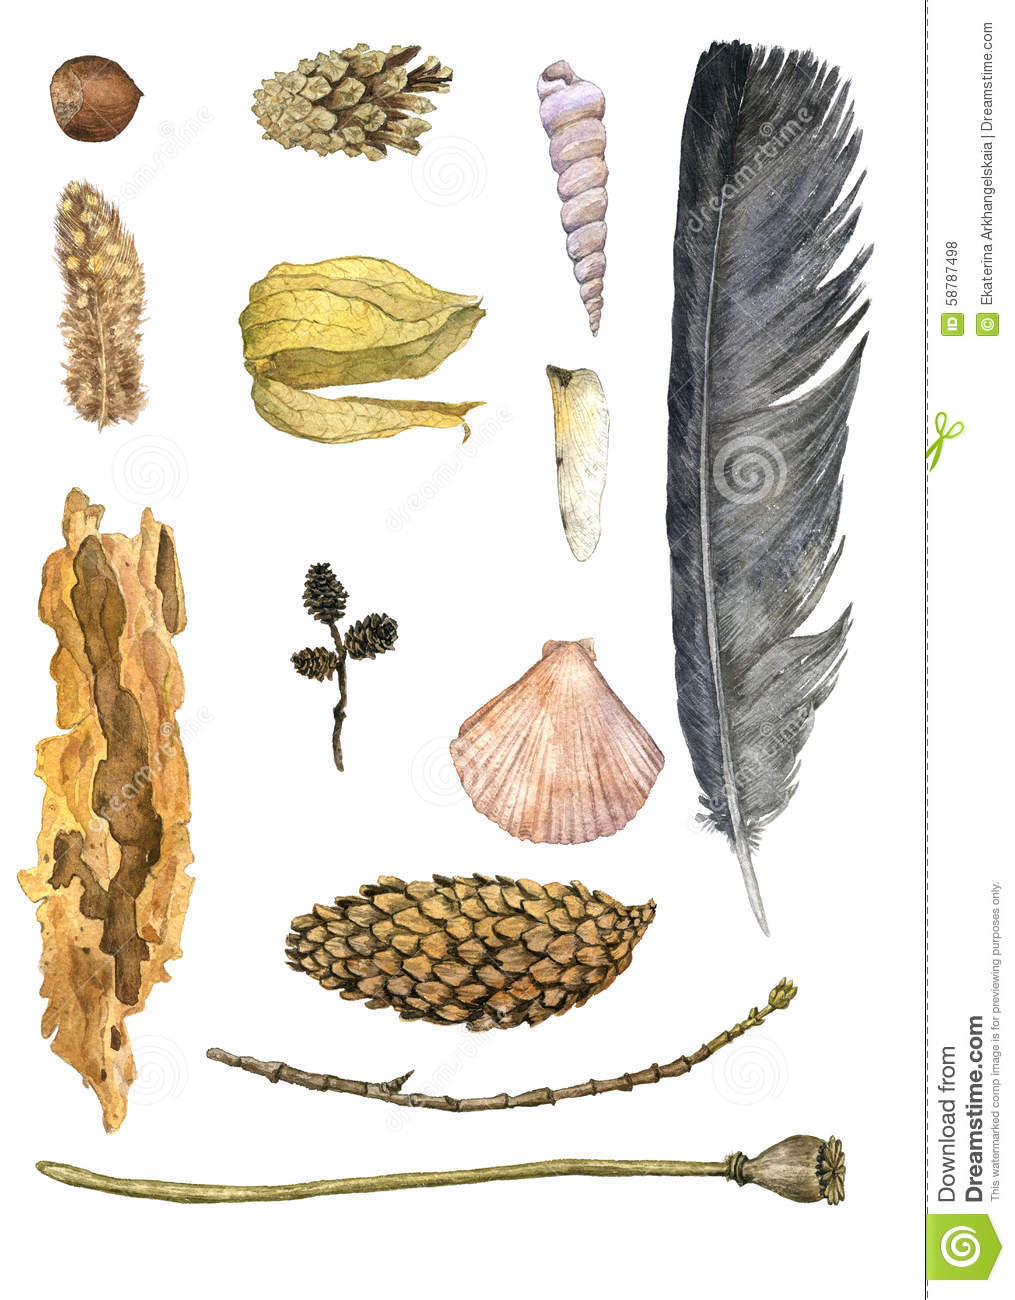 objects nature watercolor shell twig dragonfly pine wing piece bark